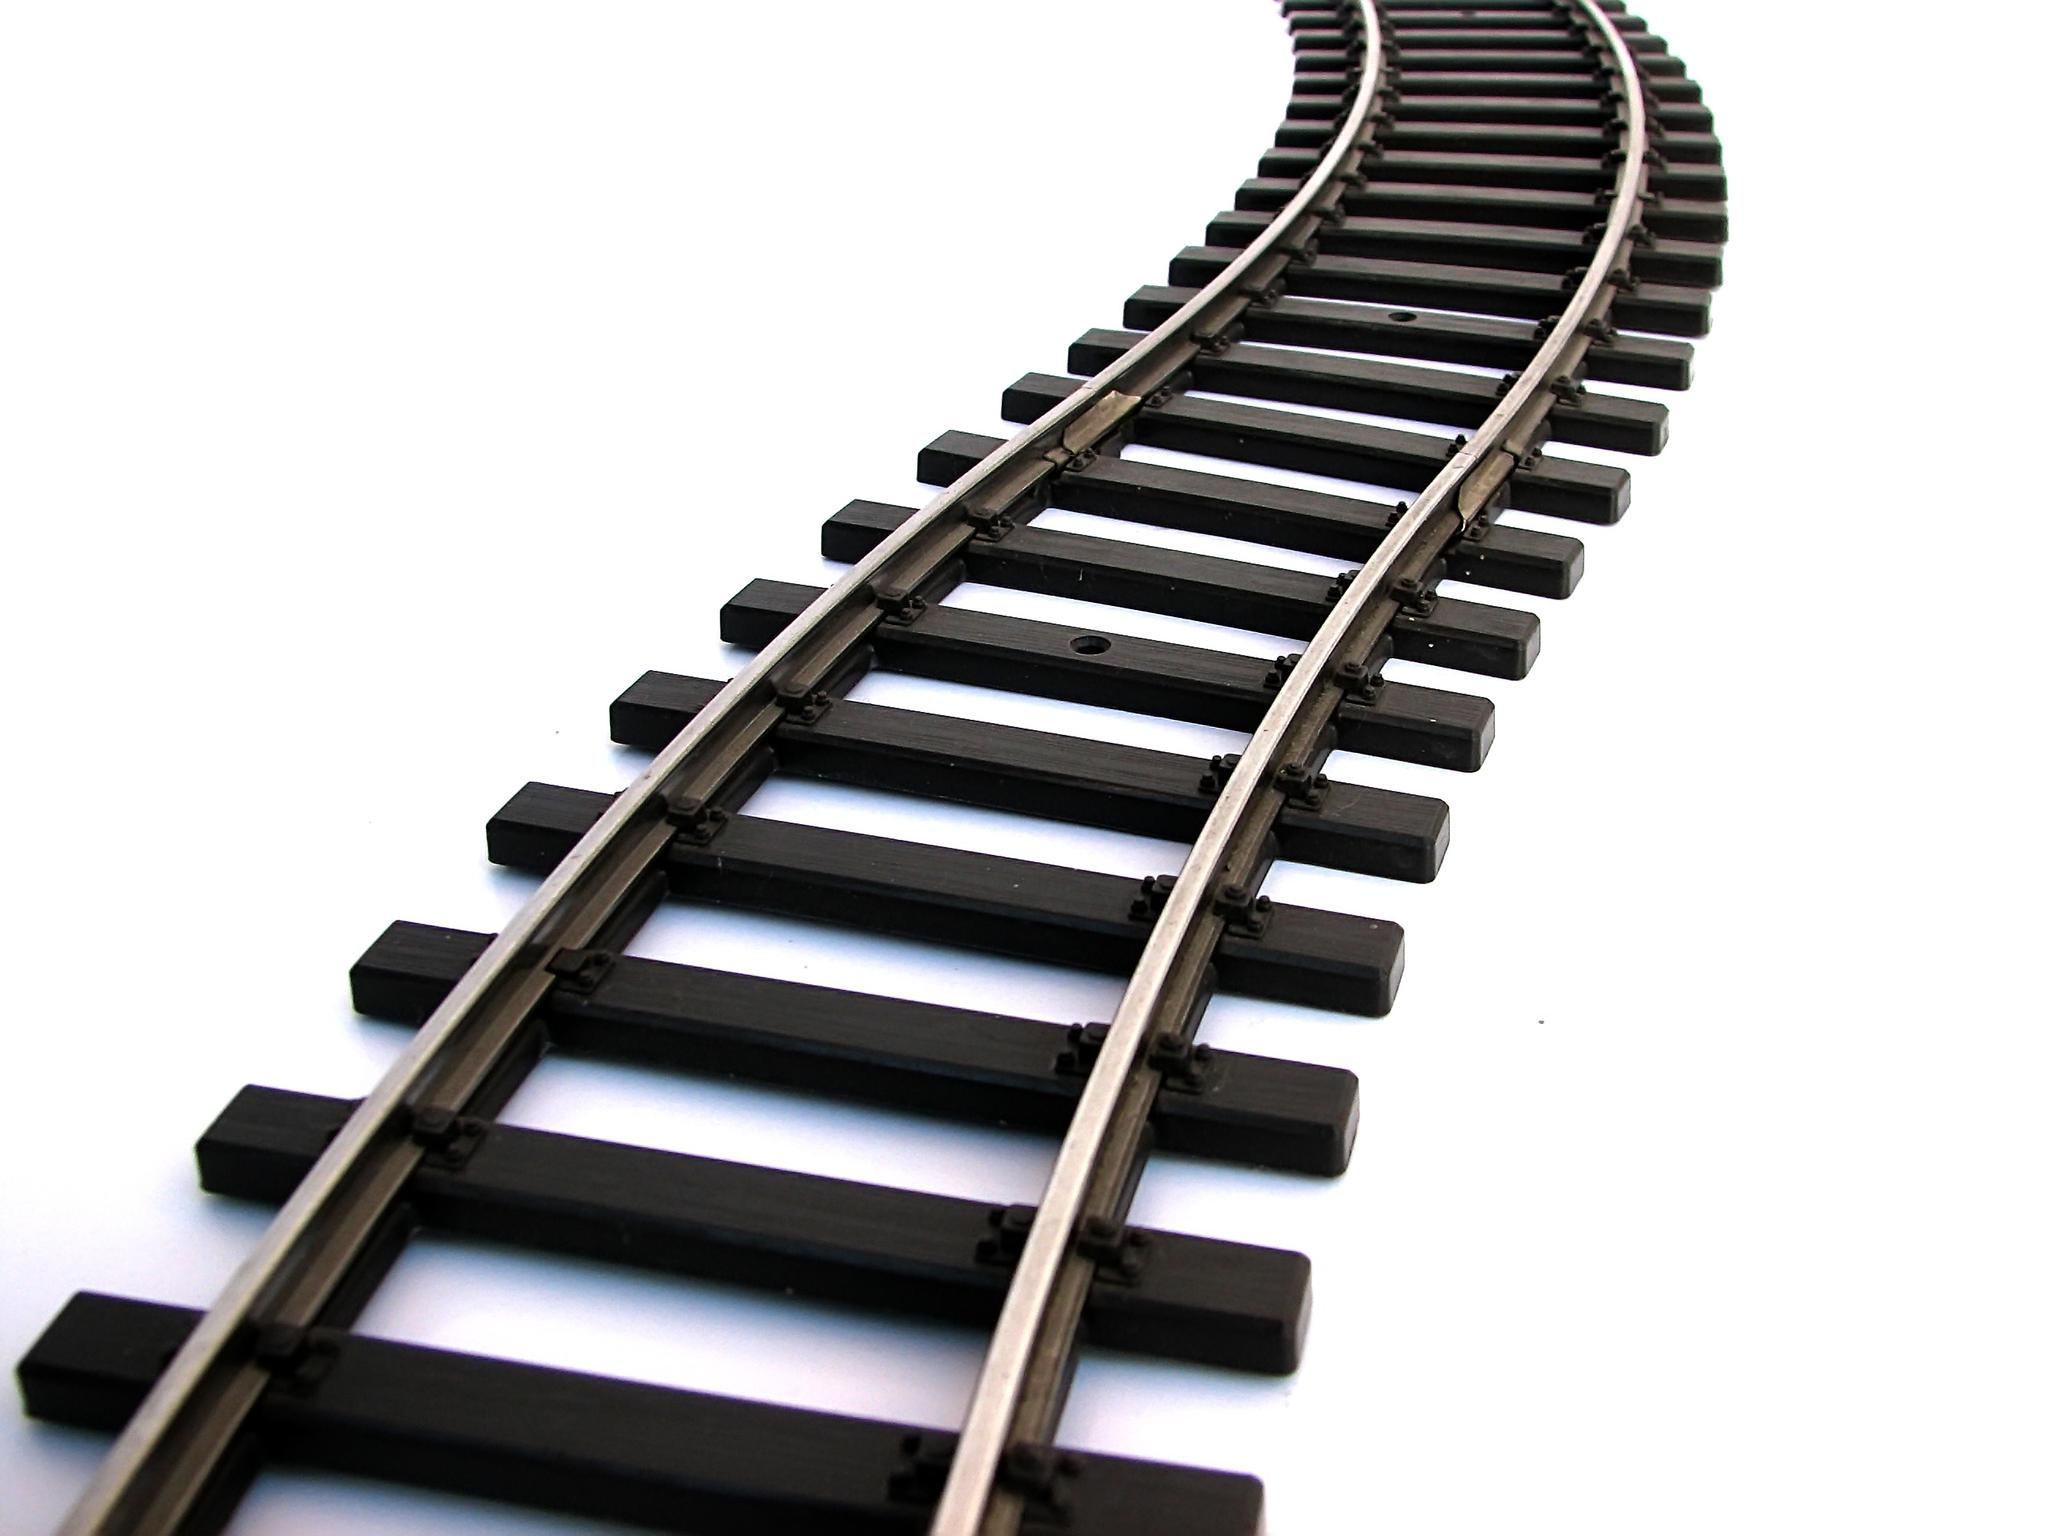 Train tracks clip art.